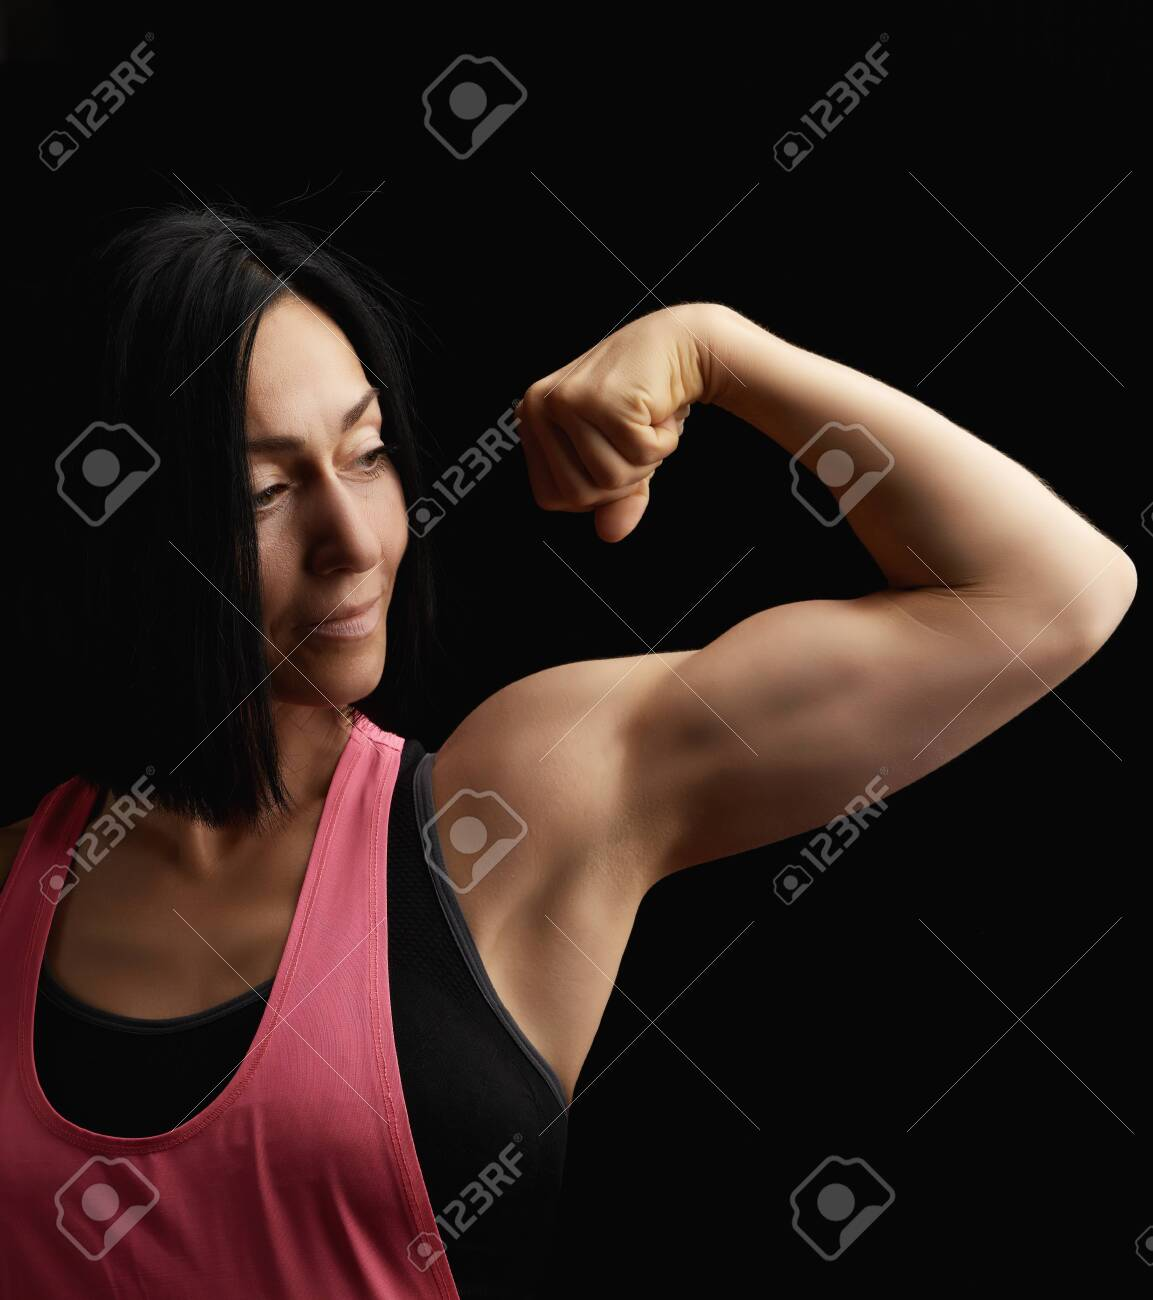 beautiful athletic girl raised and bent her arm demonstrating her biceps, athlete is standing on a dark background, wearing a black top - 134332696